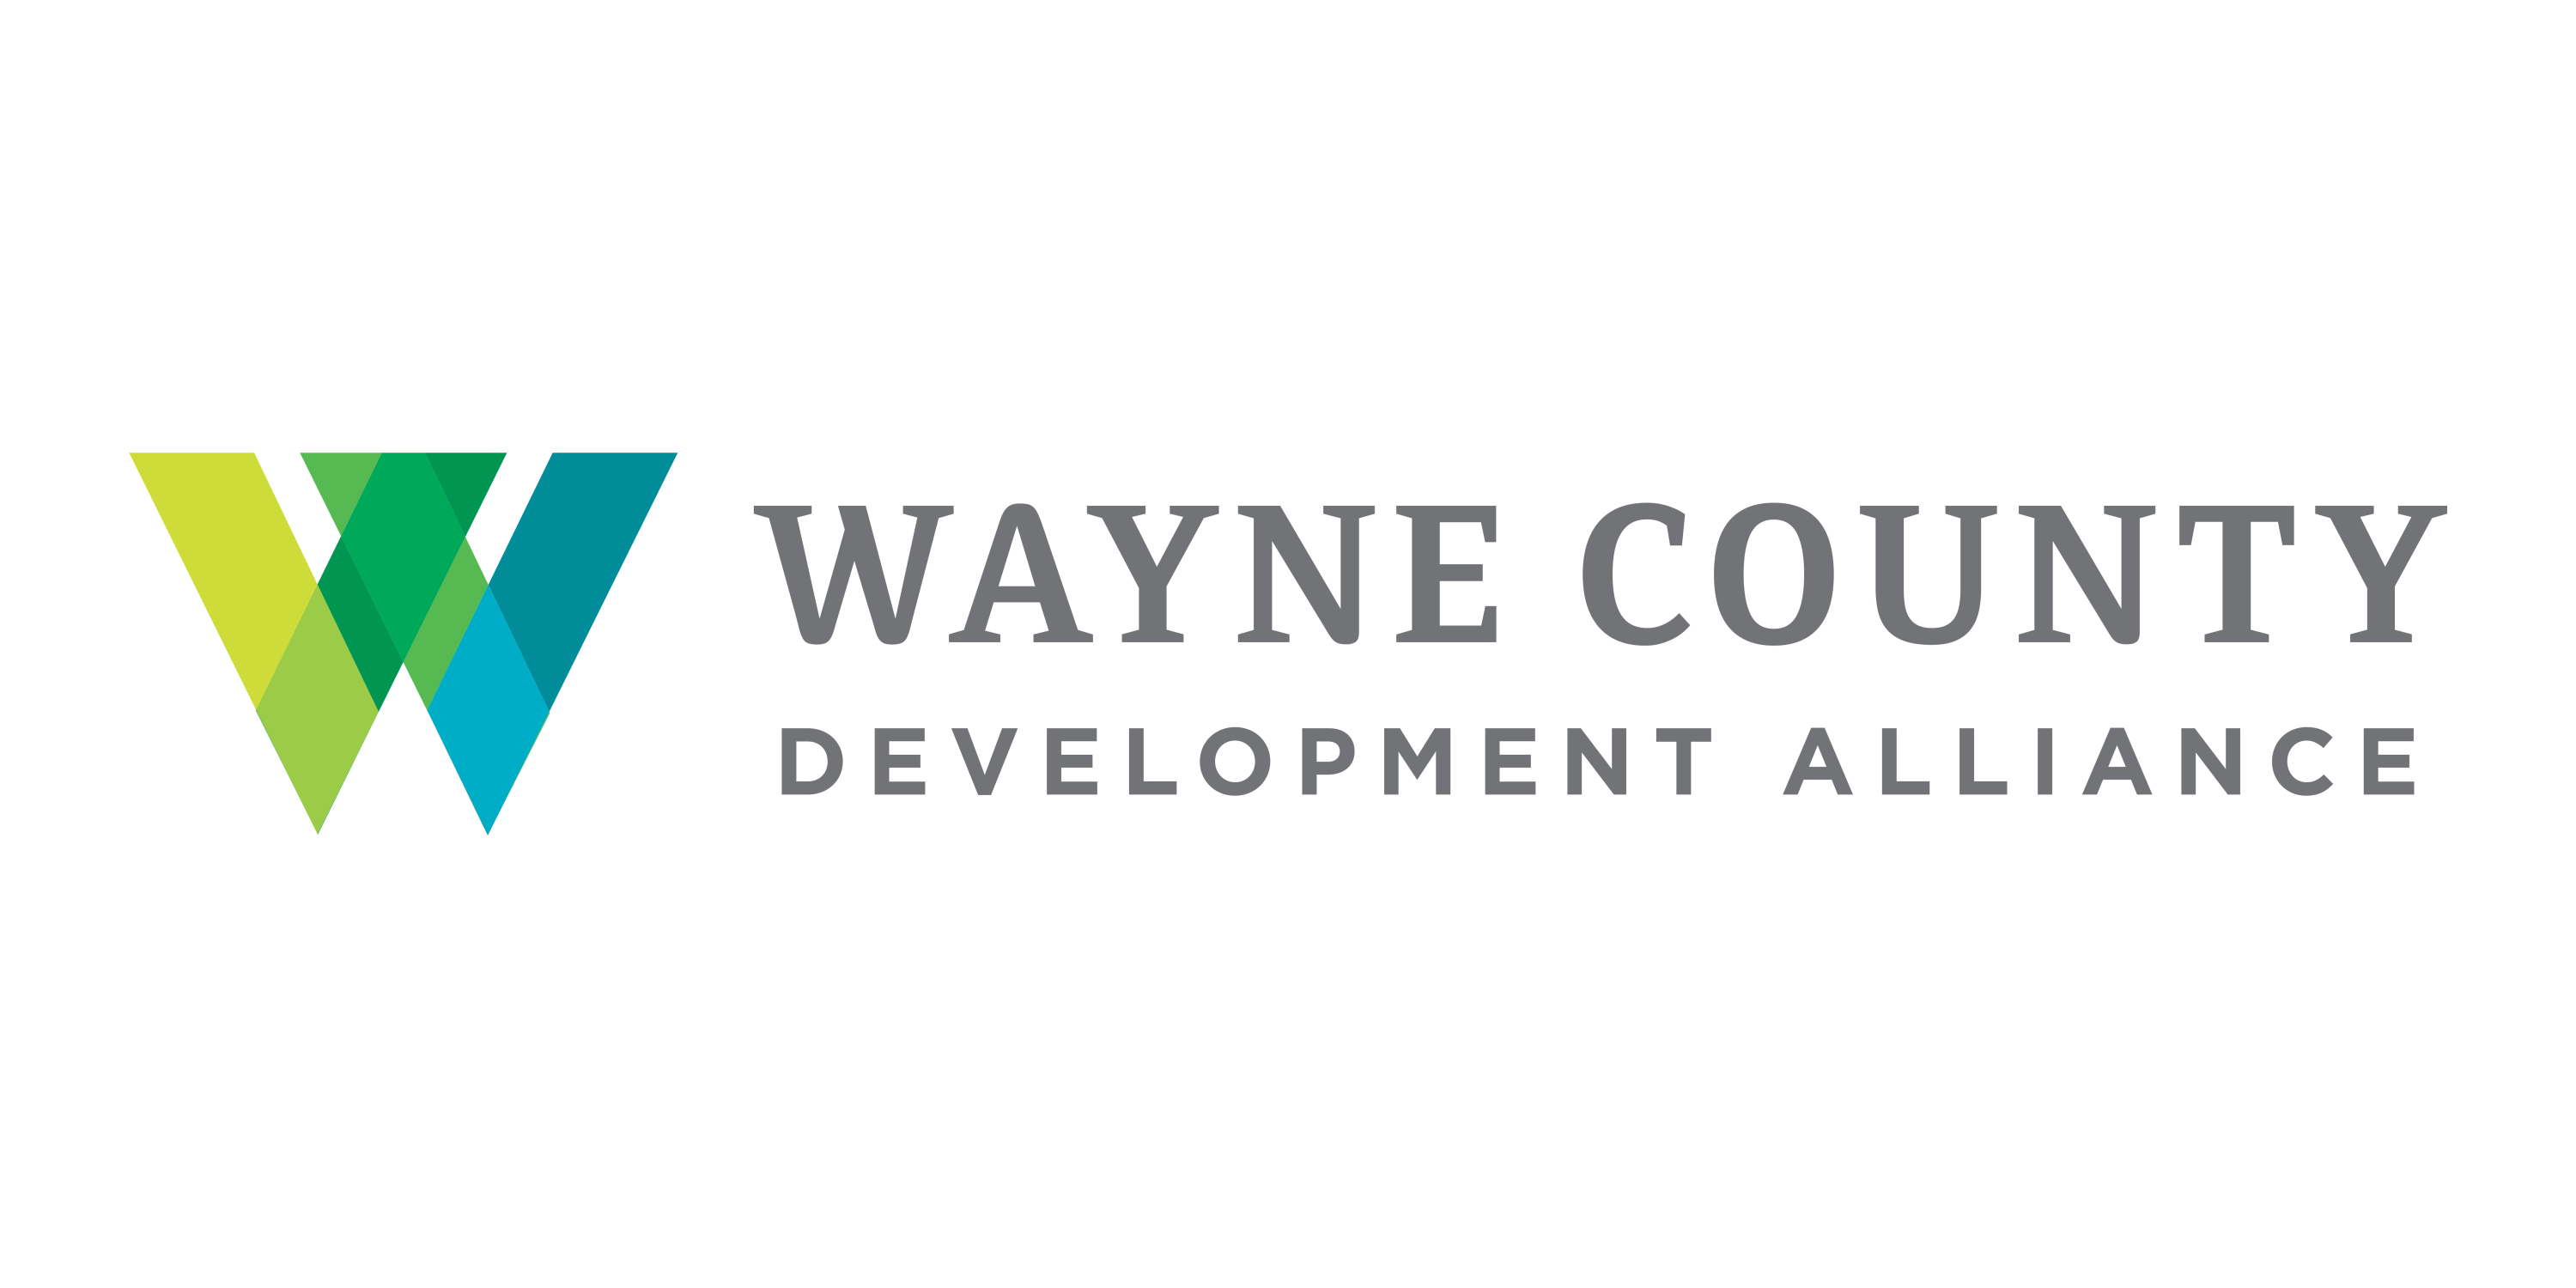 LaunchGOLDSBORO partner Wayne County Development Alliance